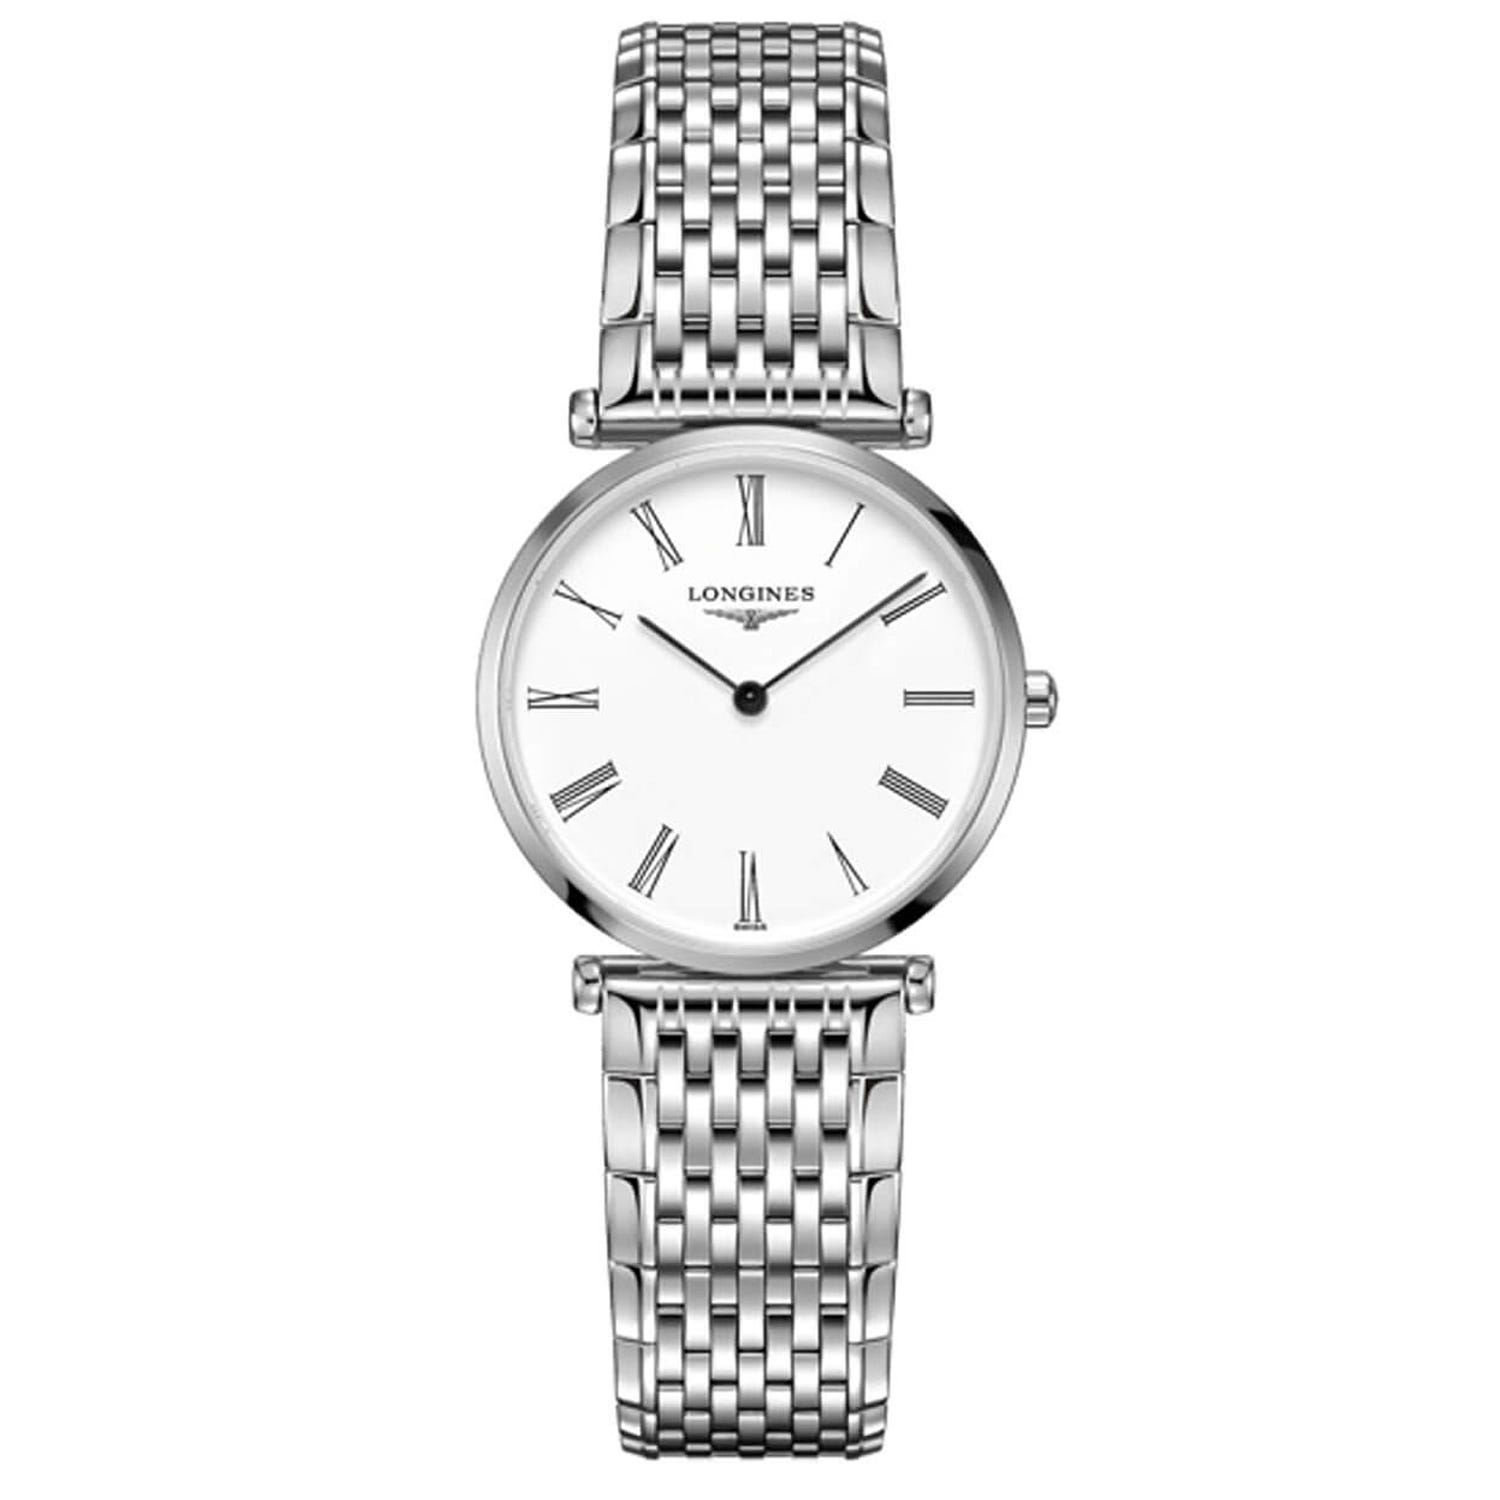 Longines La Grande Classique Tonneau ladies' stainless steel bracelet watch